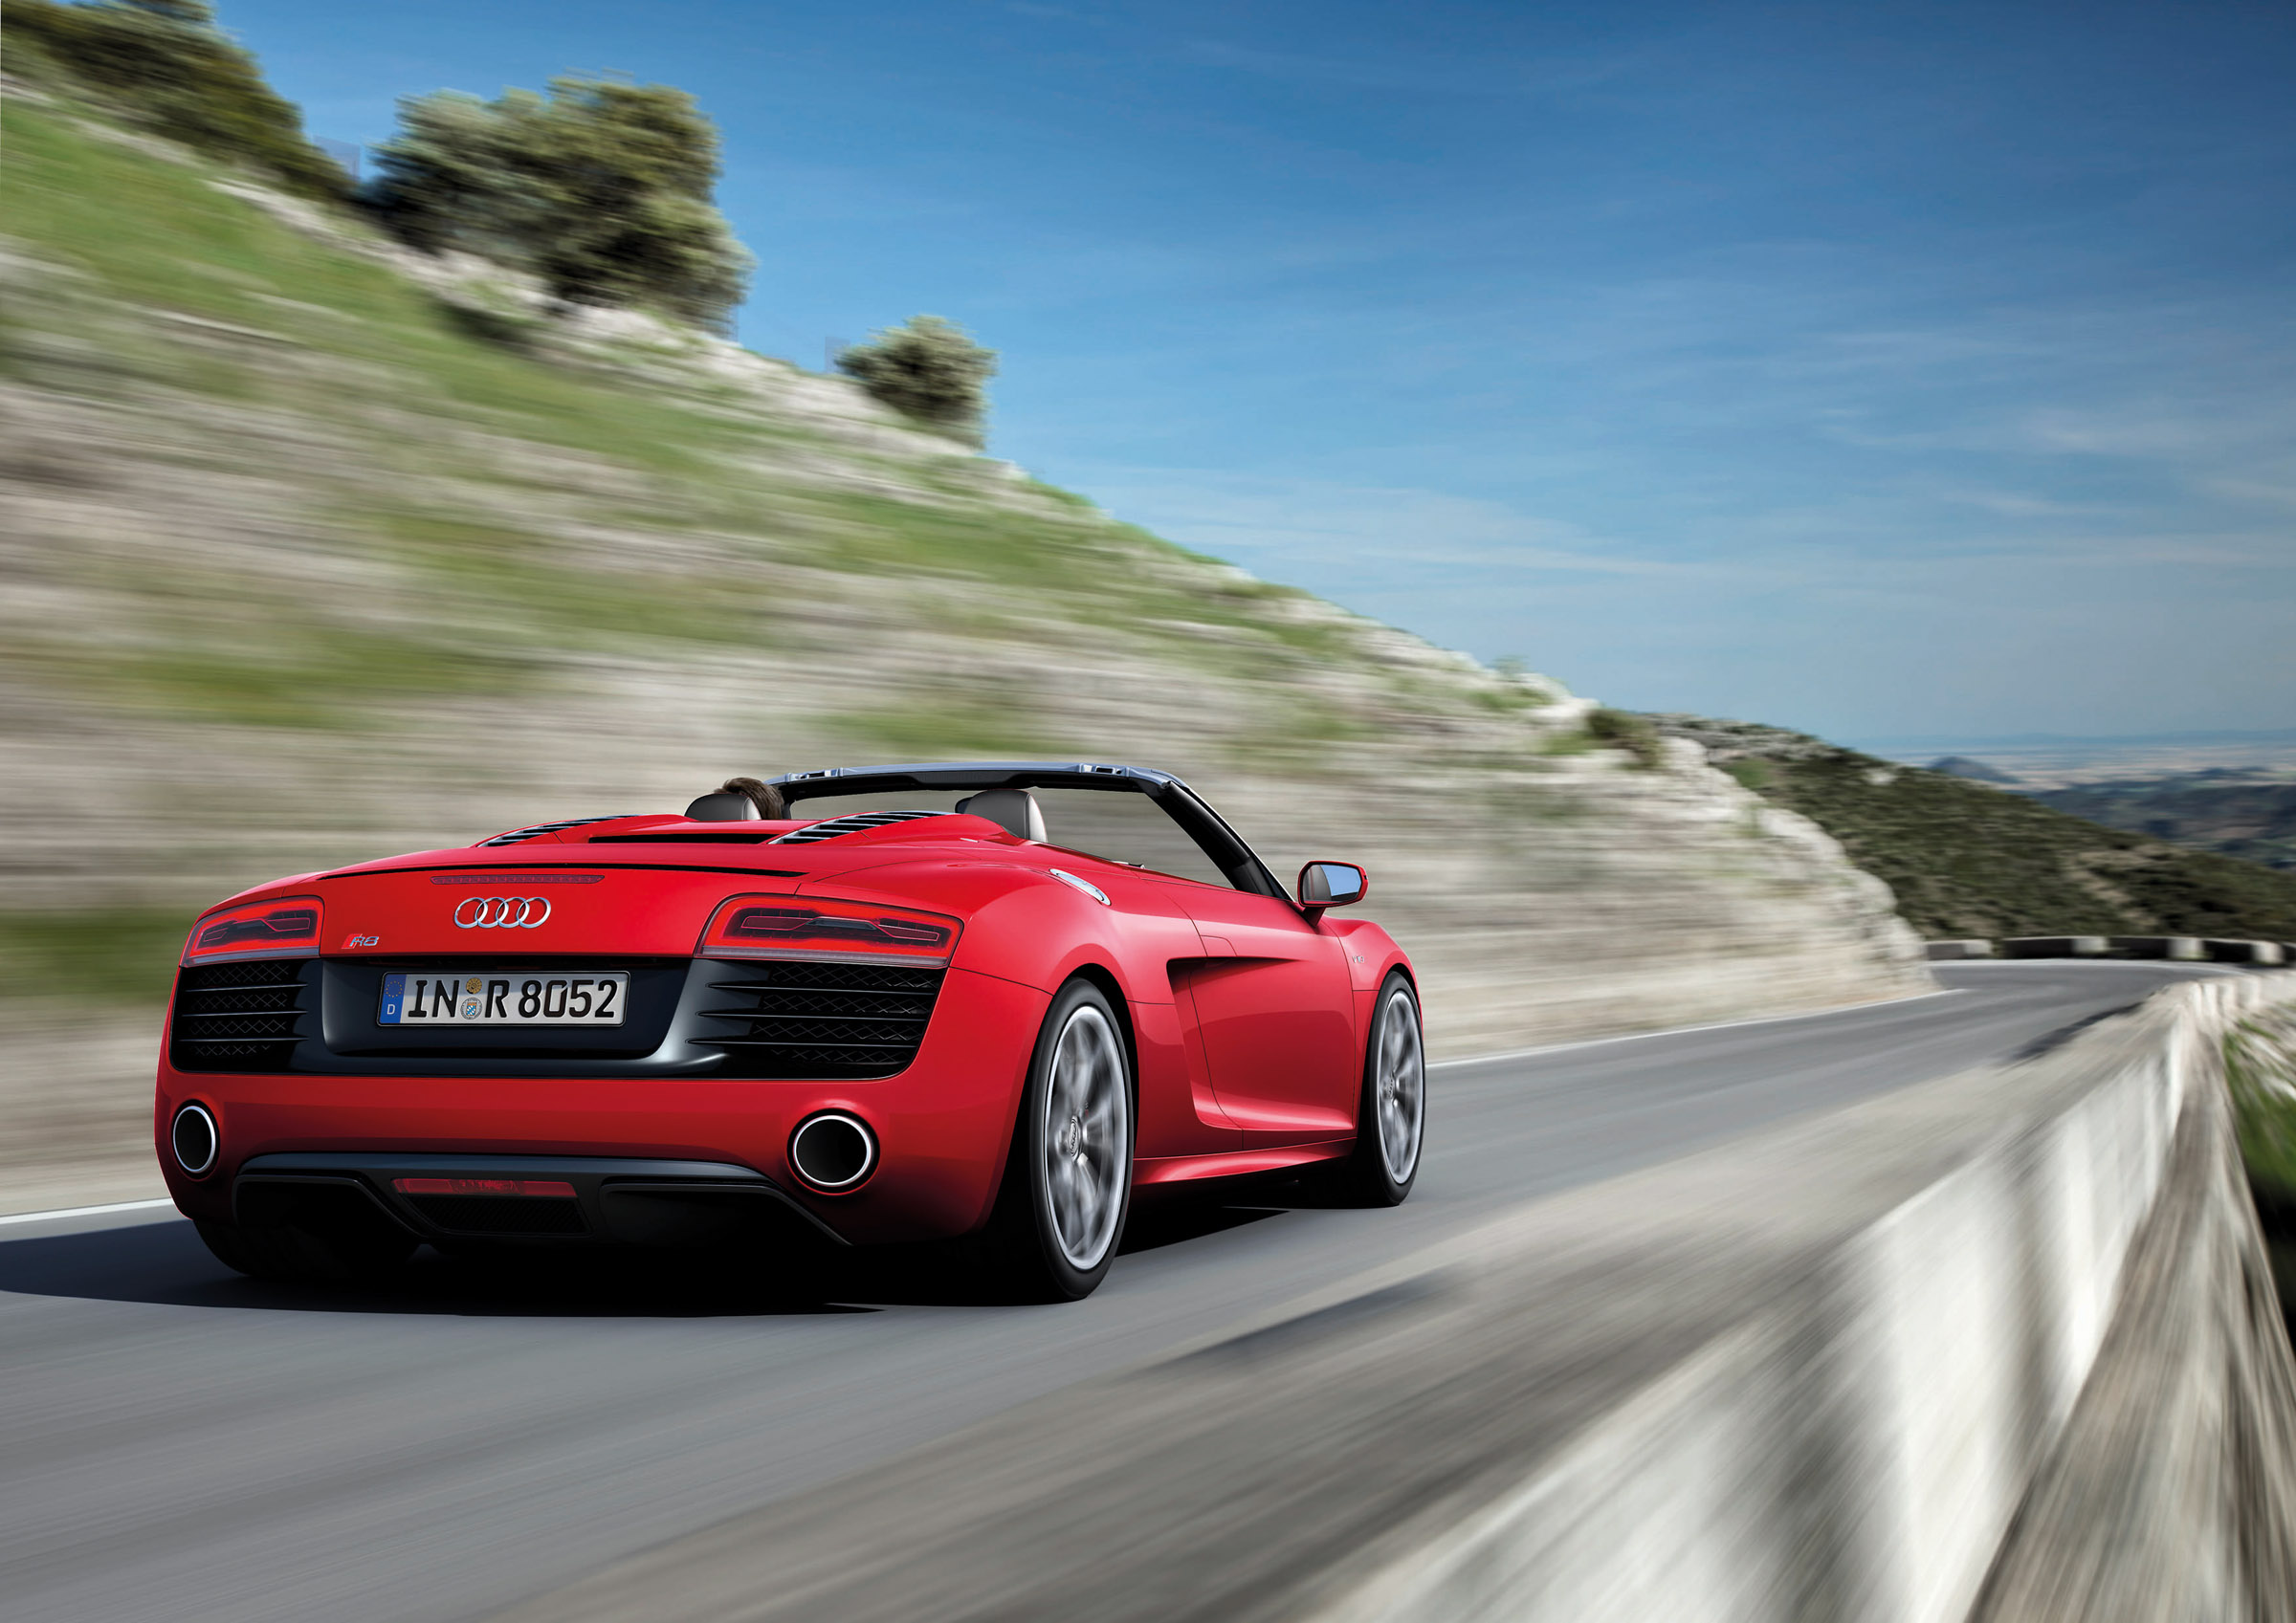 2013 Red Audi R8 Spyder V10 Rear View